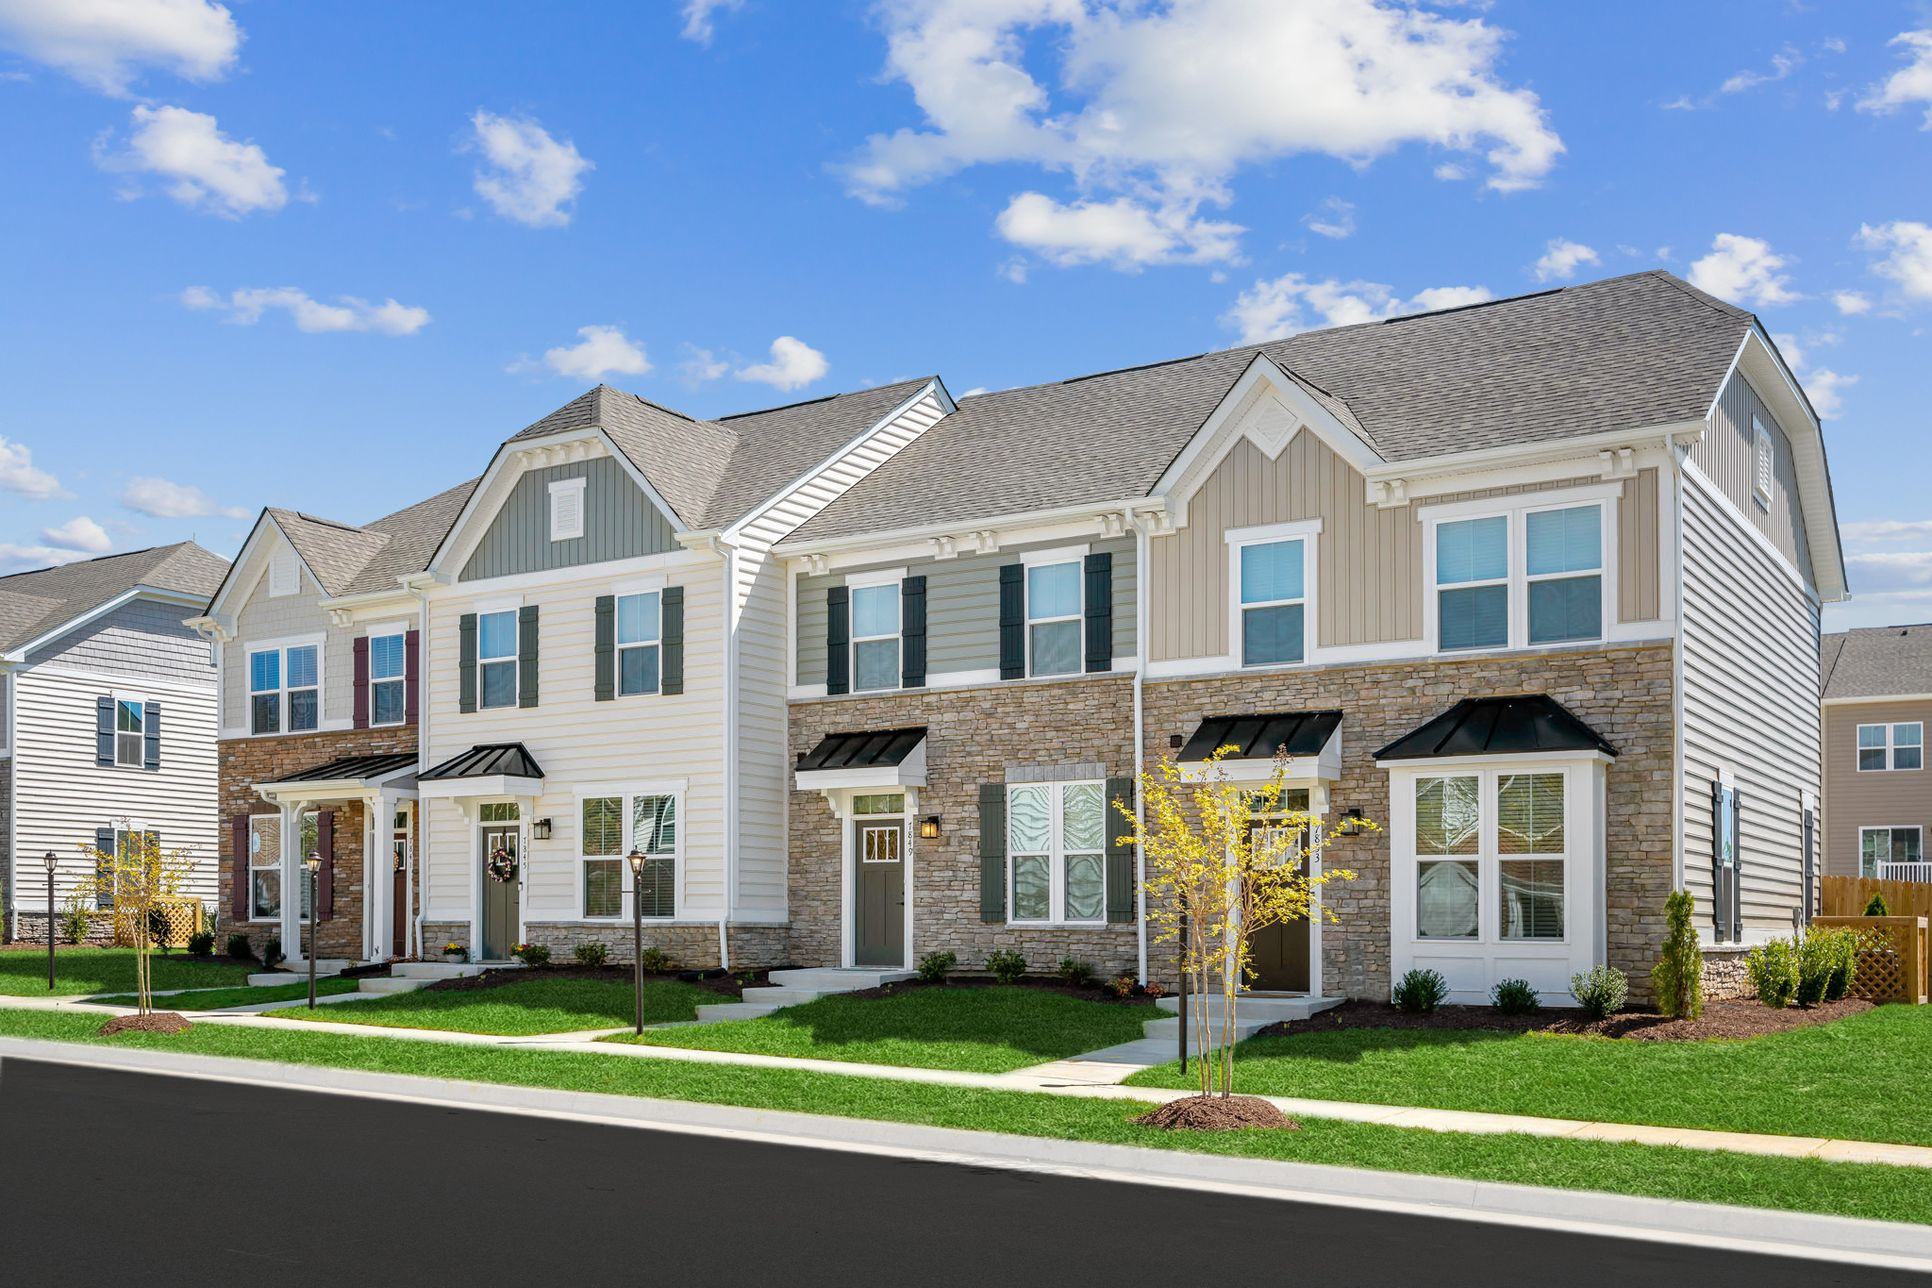 AFFORDABLE TOWNHOMES IN PORTSMOUTH:High demand community from upper $100s – starting at $1200/mo. Enjoy a shorter commute, resort-style amenities & no yard work.Click here to claim $500 incentive – ends 8/17.